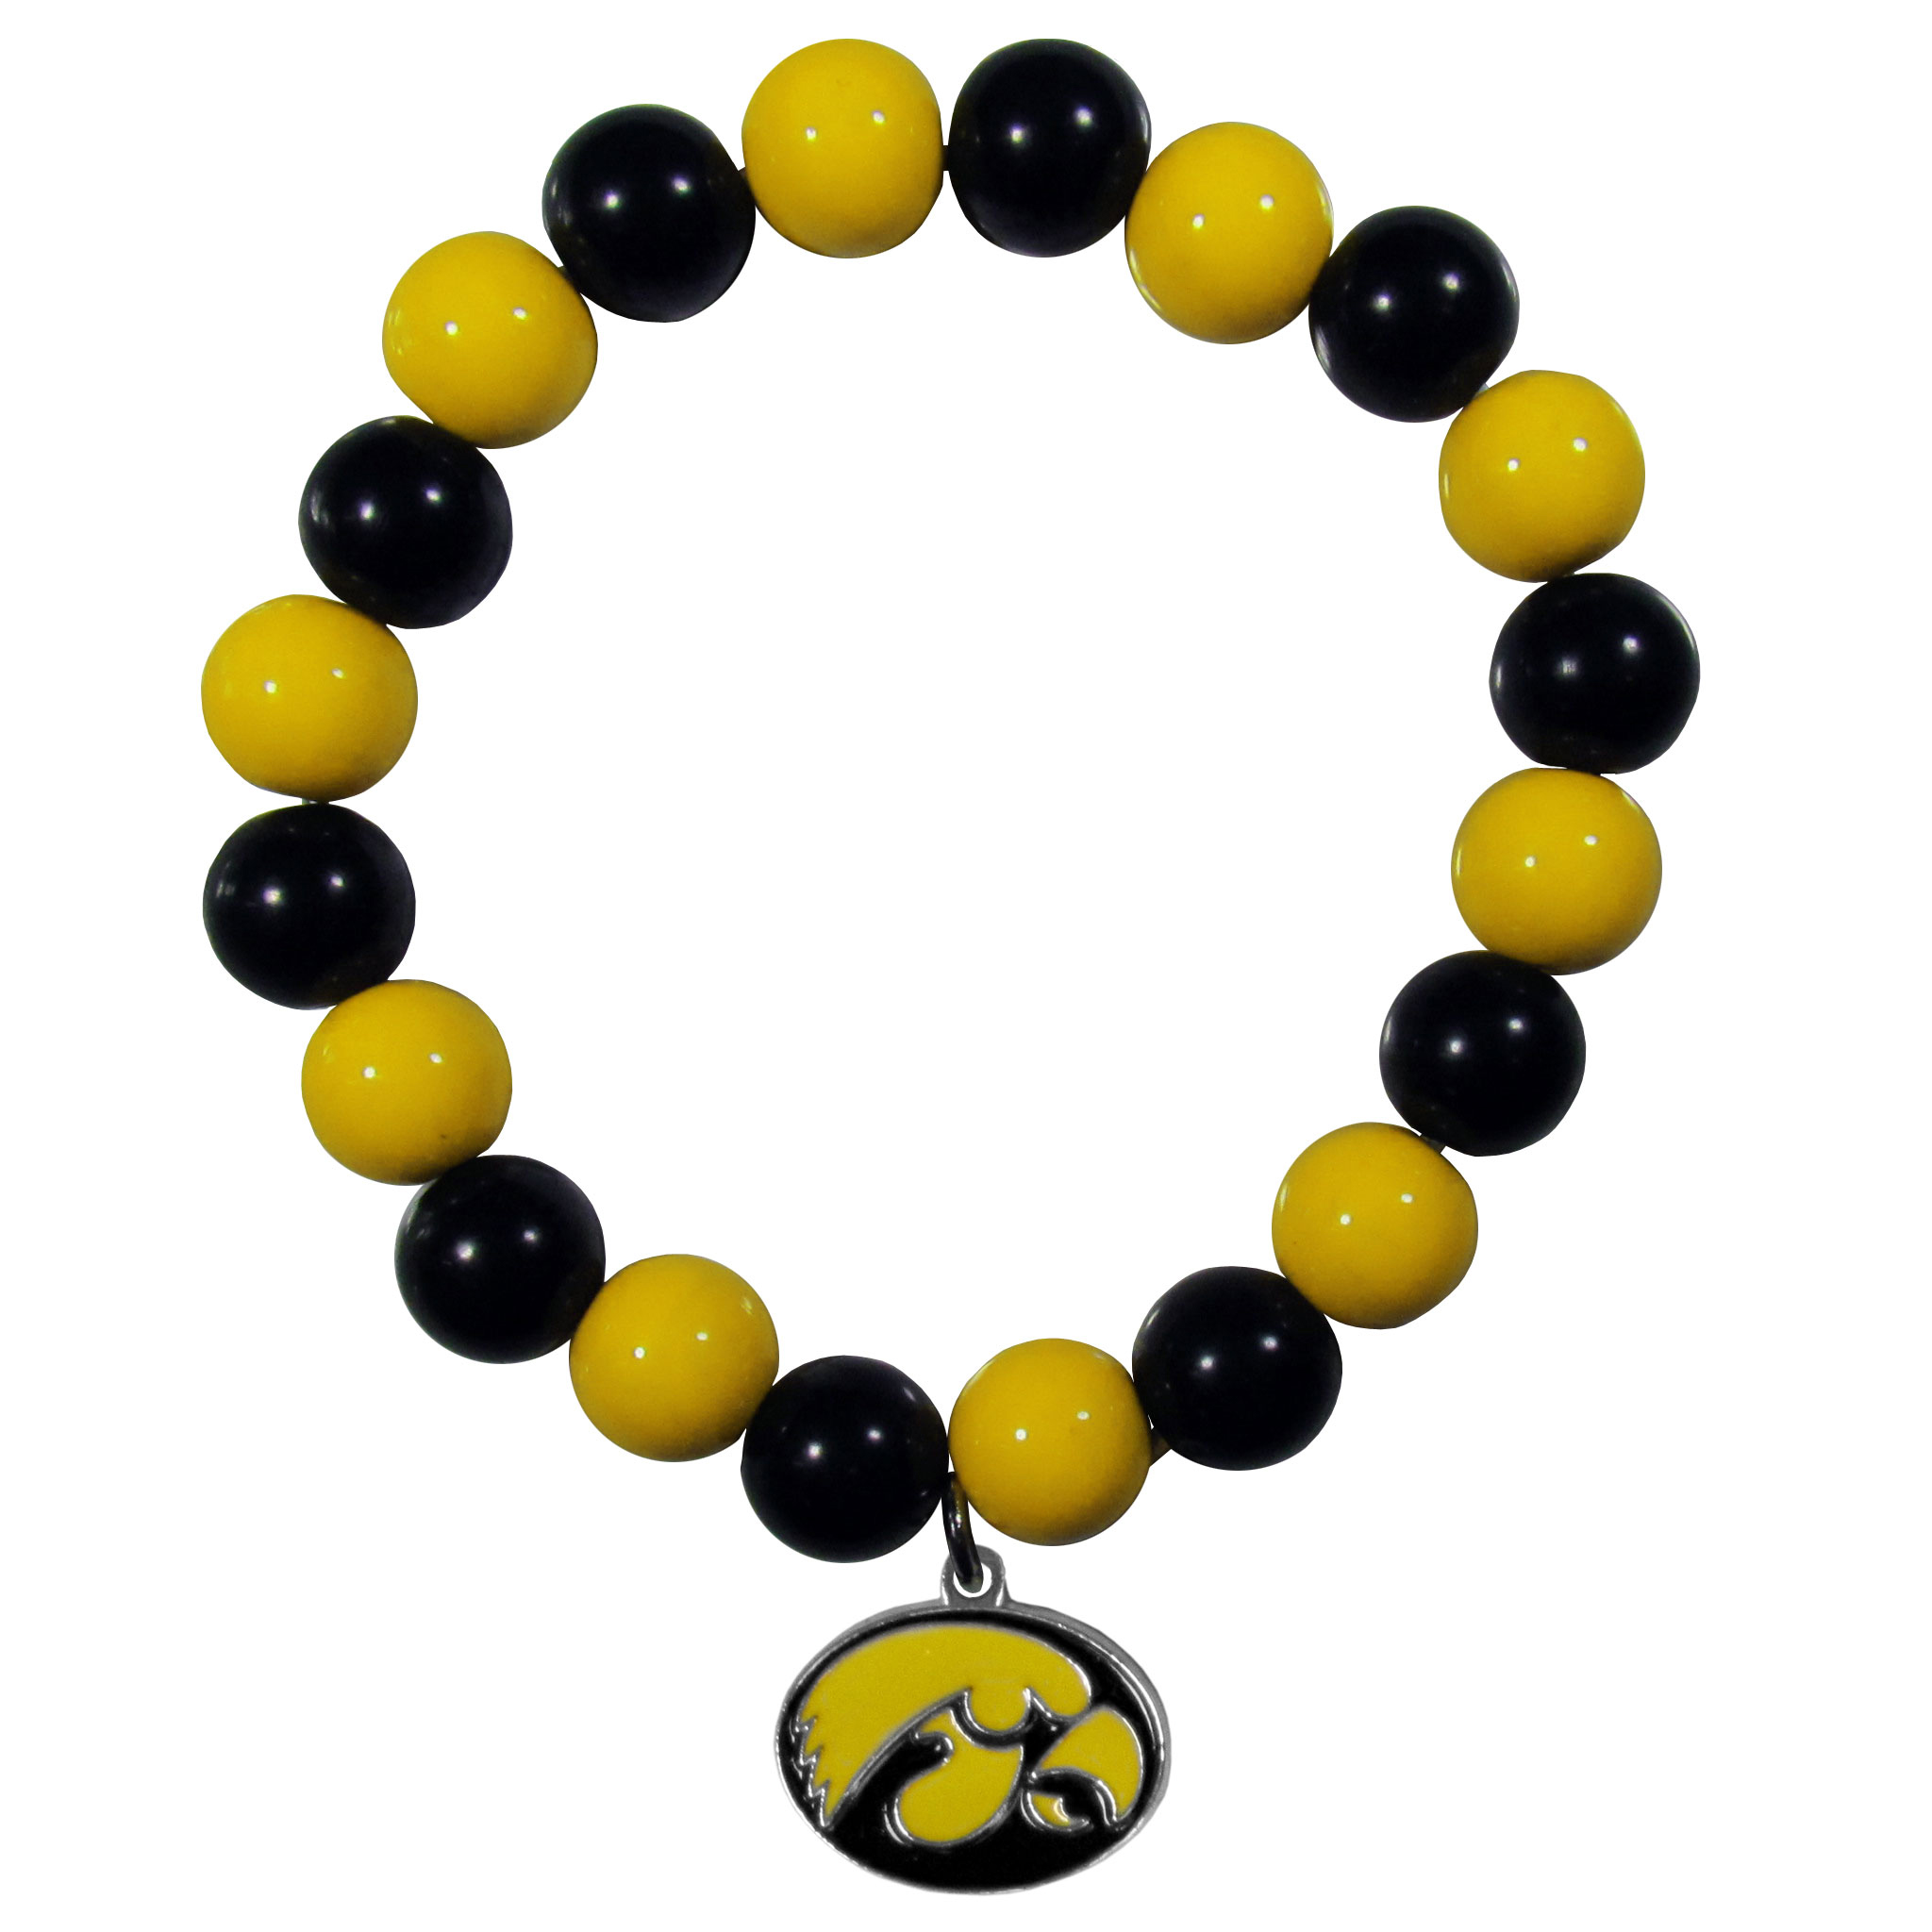 Iowa Hawkeyes Fan Bead Bracelet - Flash your Iowa Hawkeyes spirit with this bright stretch bracelet. This new bracelet features multicolored team beads on stretch cord with a nickel-free enameled chrome team charm. This bracelet adds the perfect pop of color to your game day accessories.